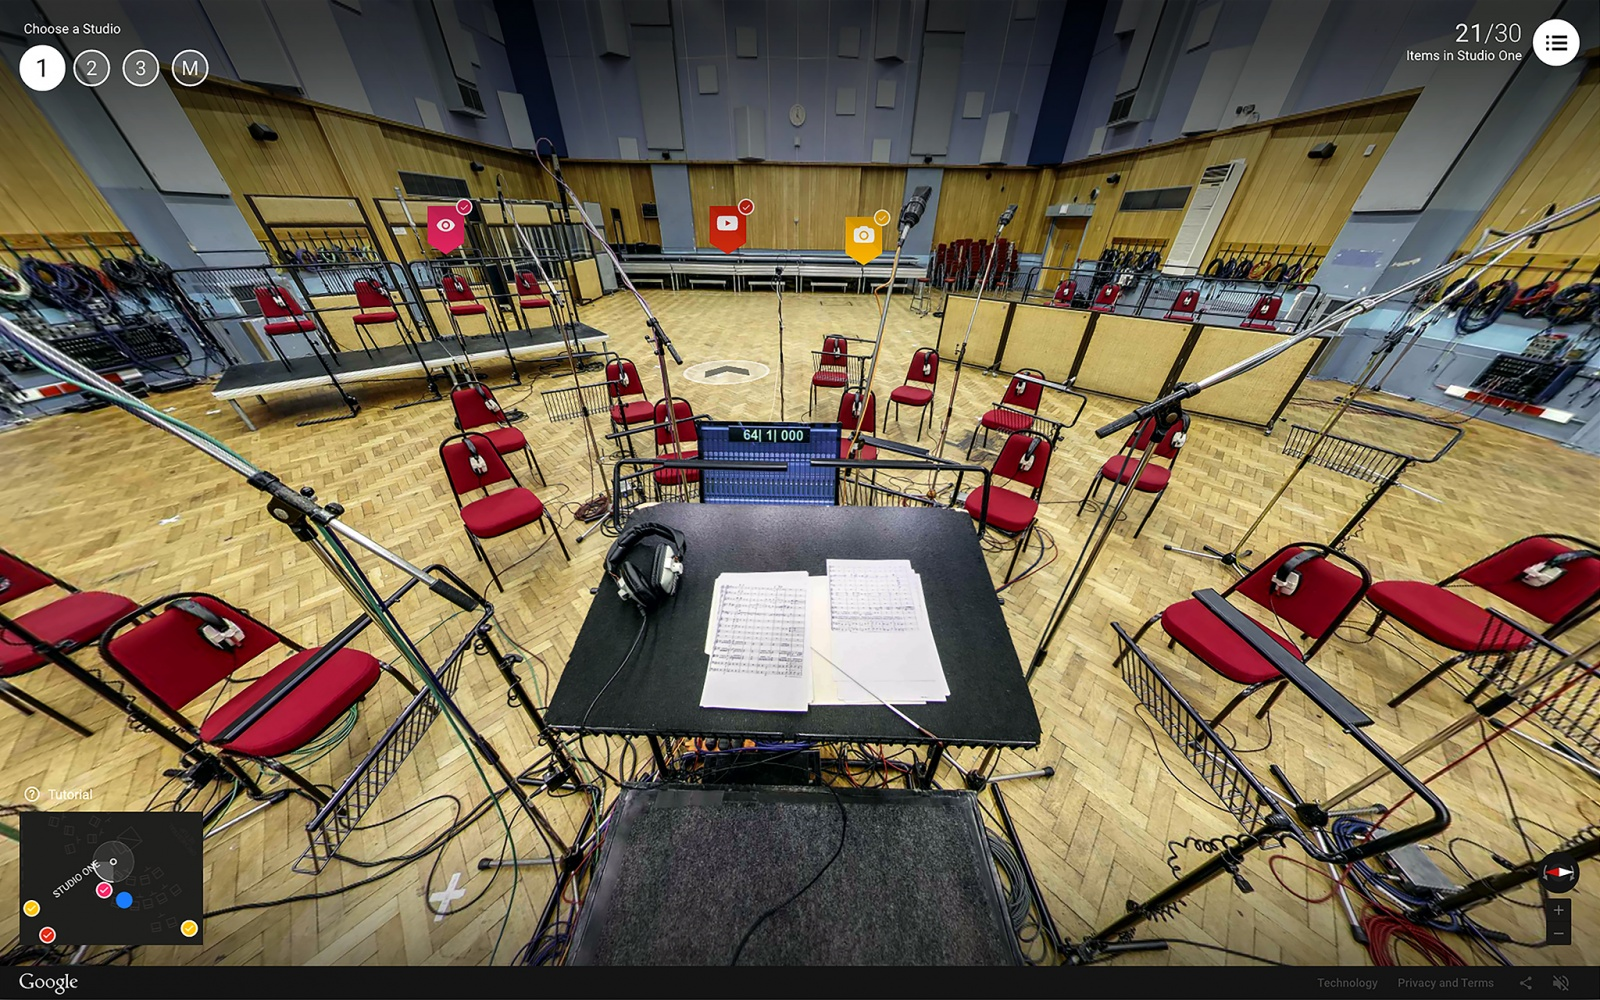 Google Inside Abbey Road